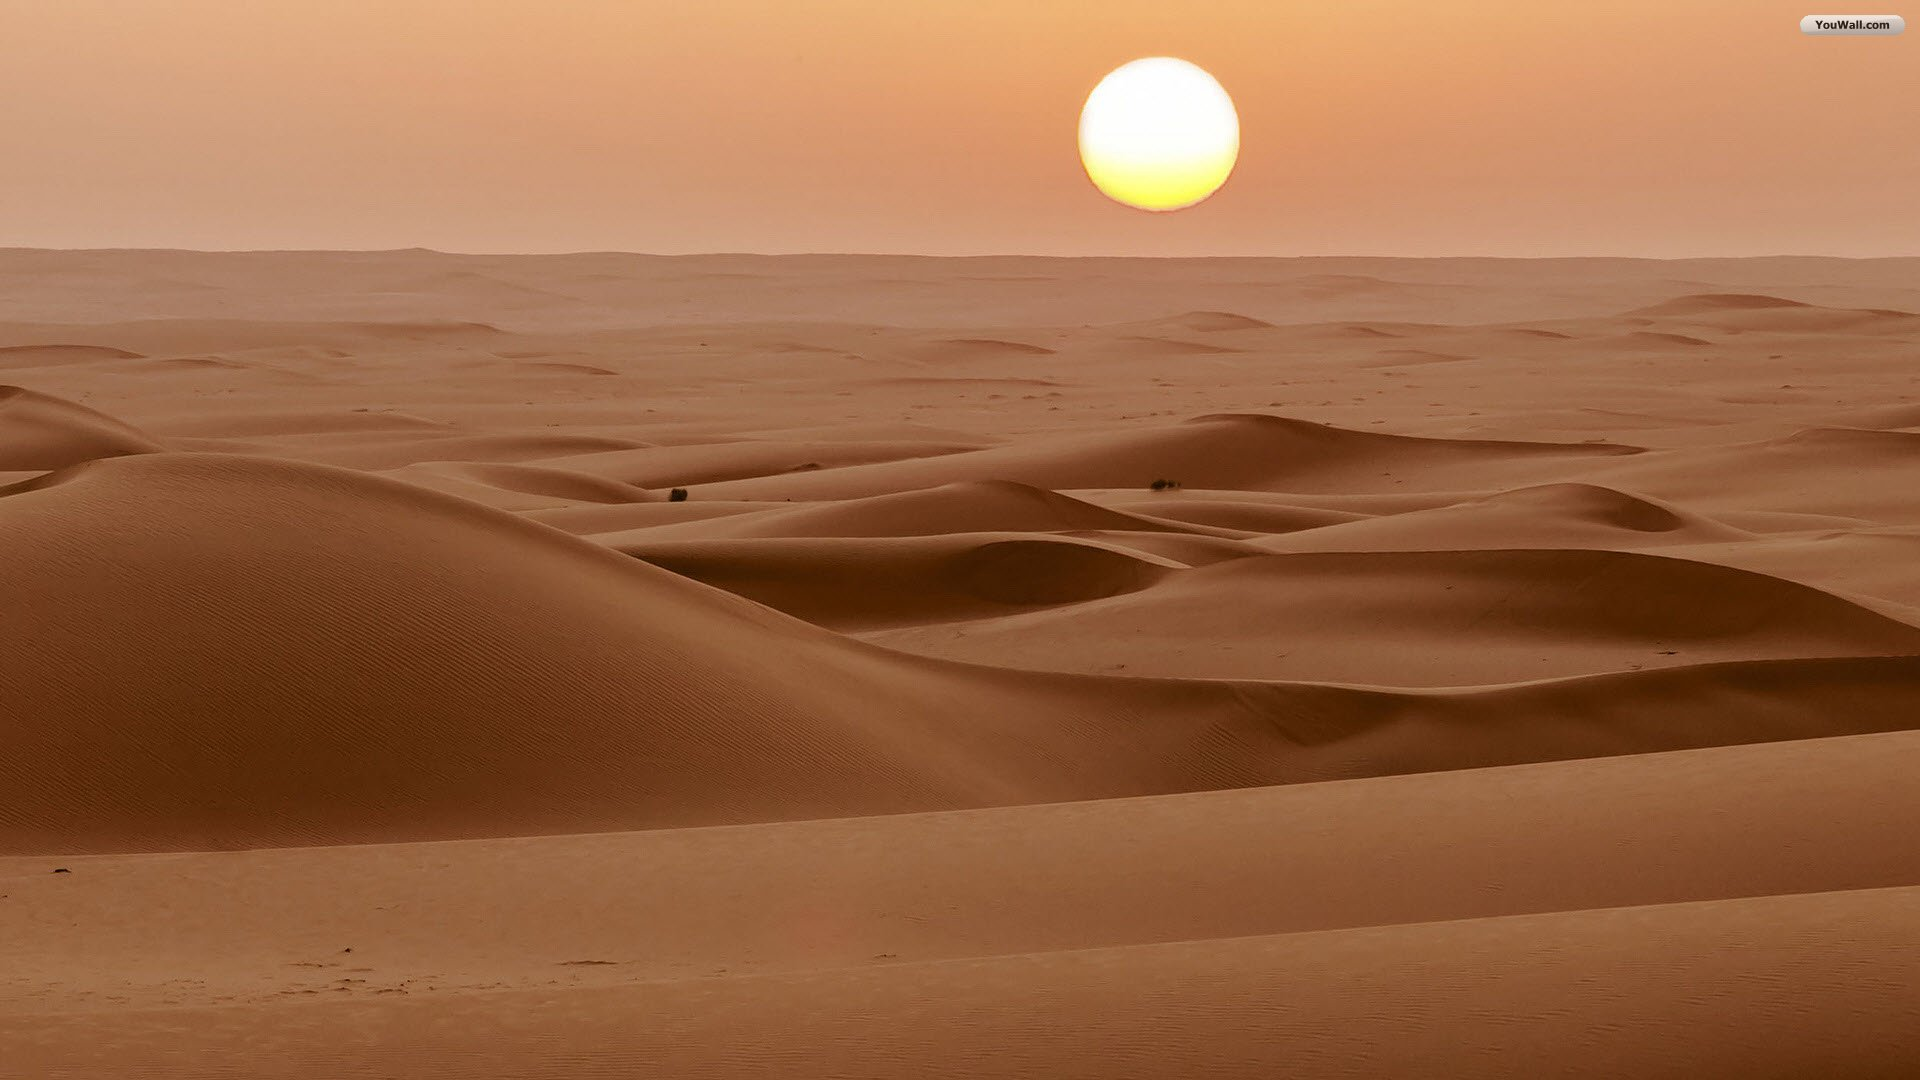 Desert Wallpapers High Quality  Download Free 1920x1080